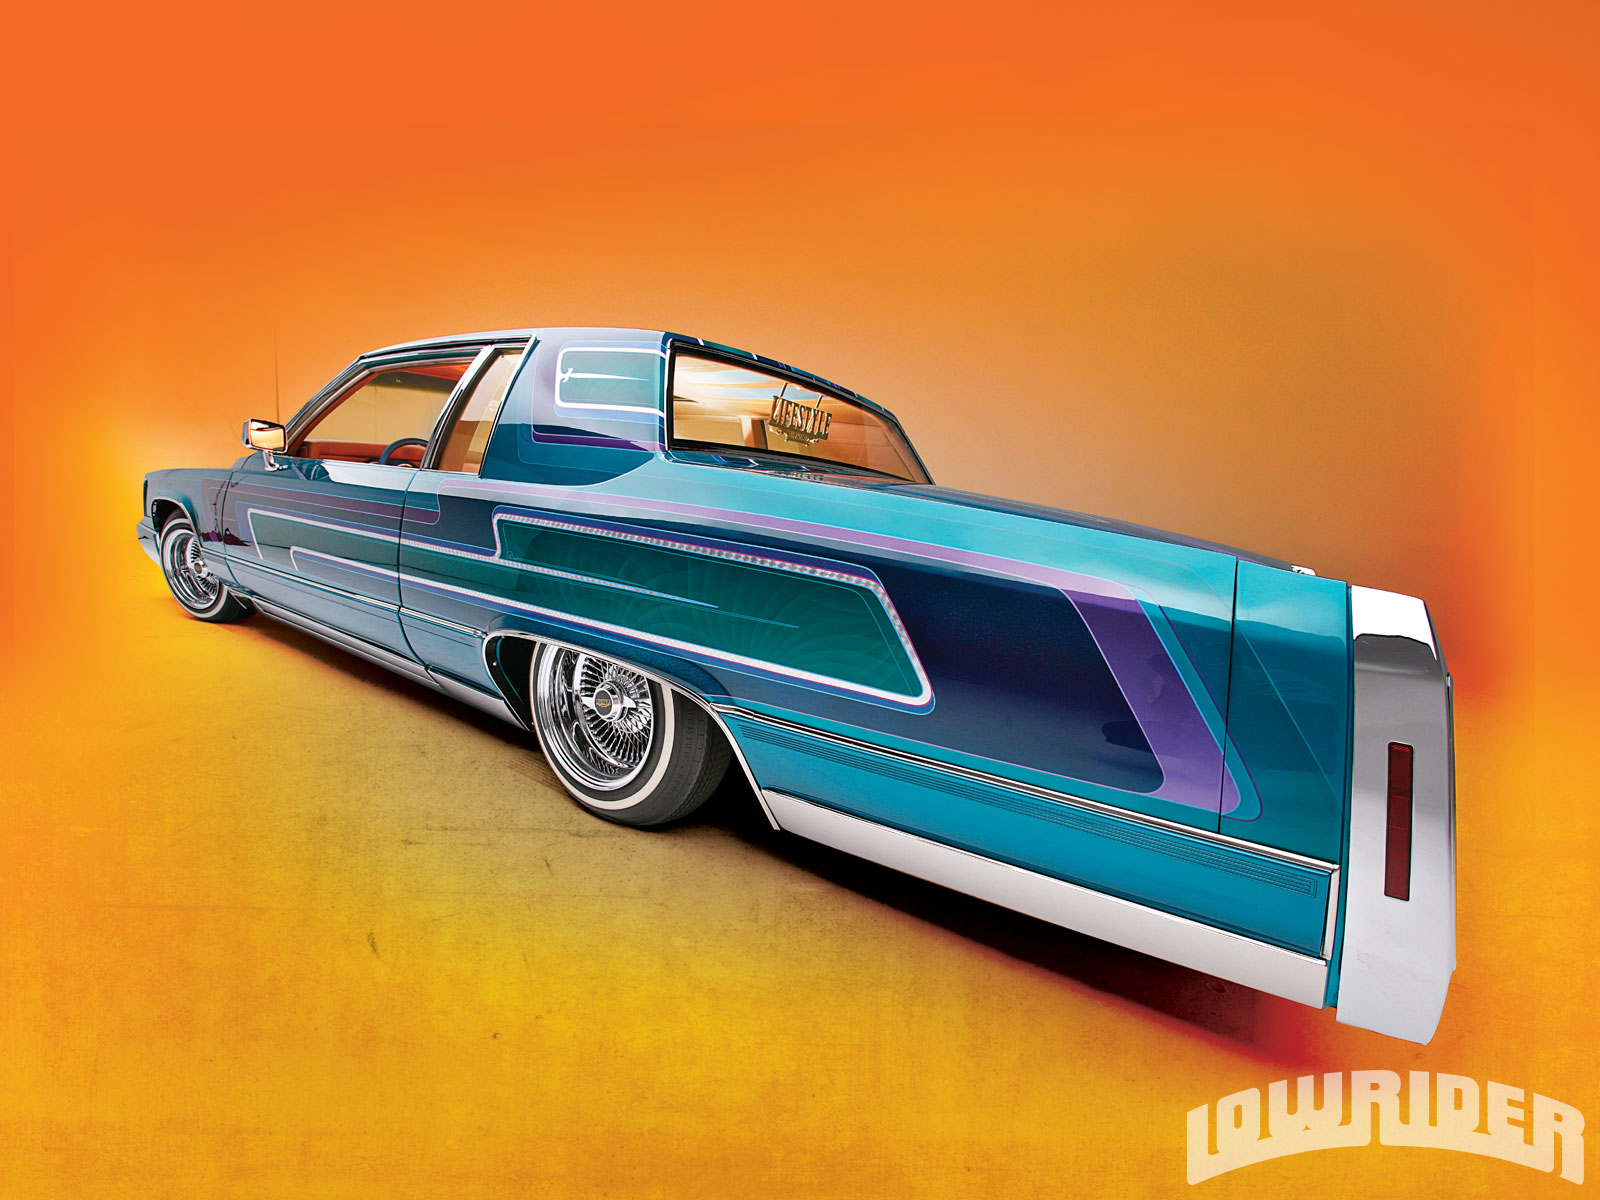 1984 Cadillac Coupe DeVille - Lowrider Magazine